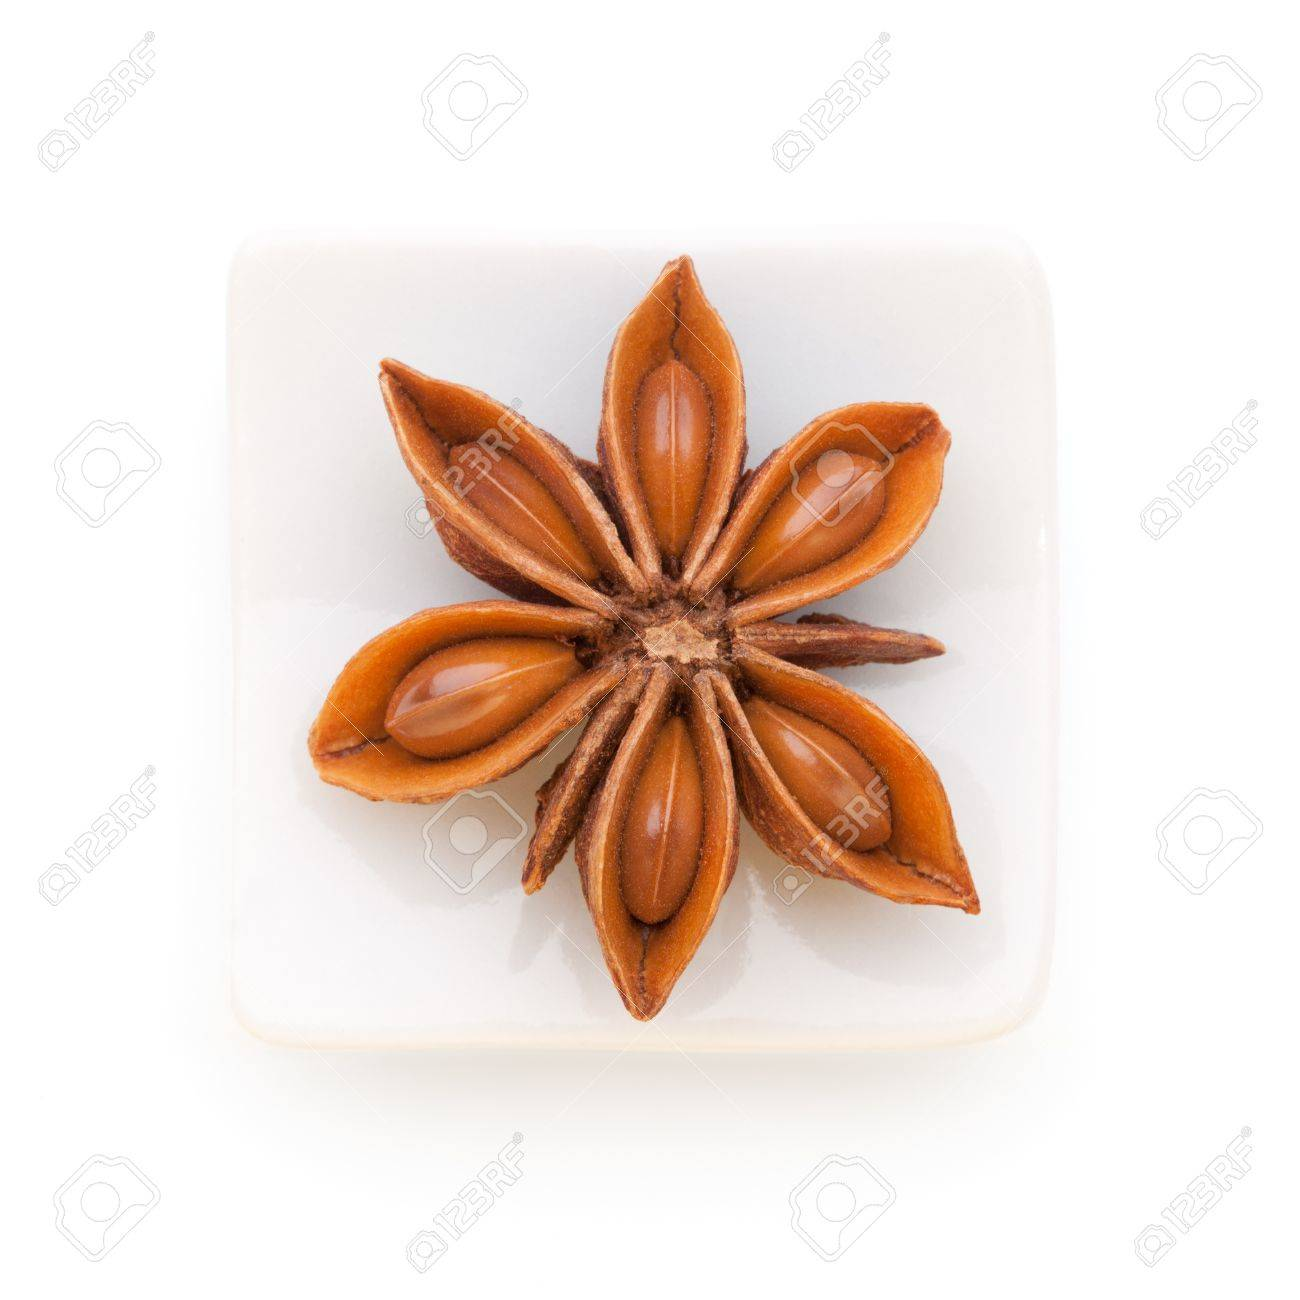 Anise star  Illicium verum   in a white bowl on white background  Also called Star aniseed, or Chinese star anise  Used as a spice in cuisines all over the world  The plant is also used in medicine Stock Photo - 15914989